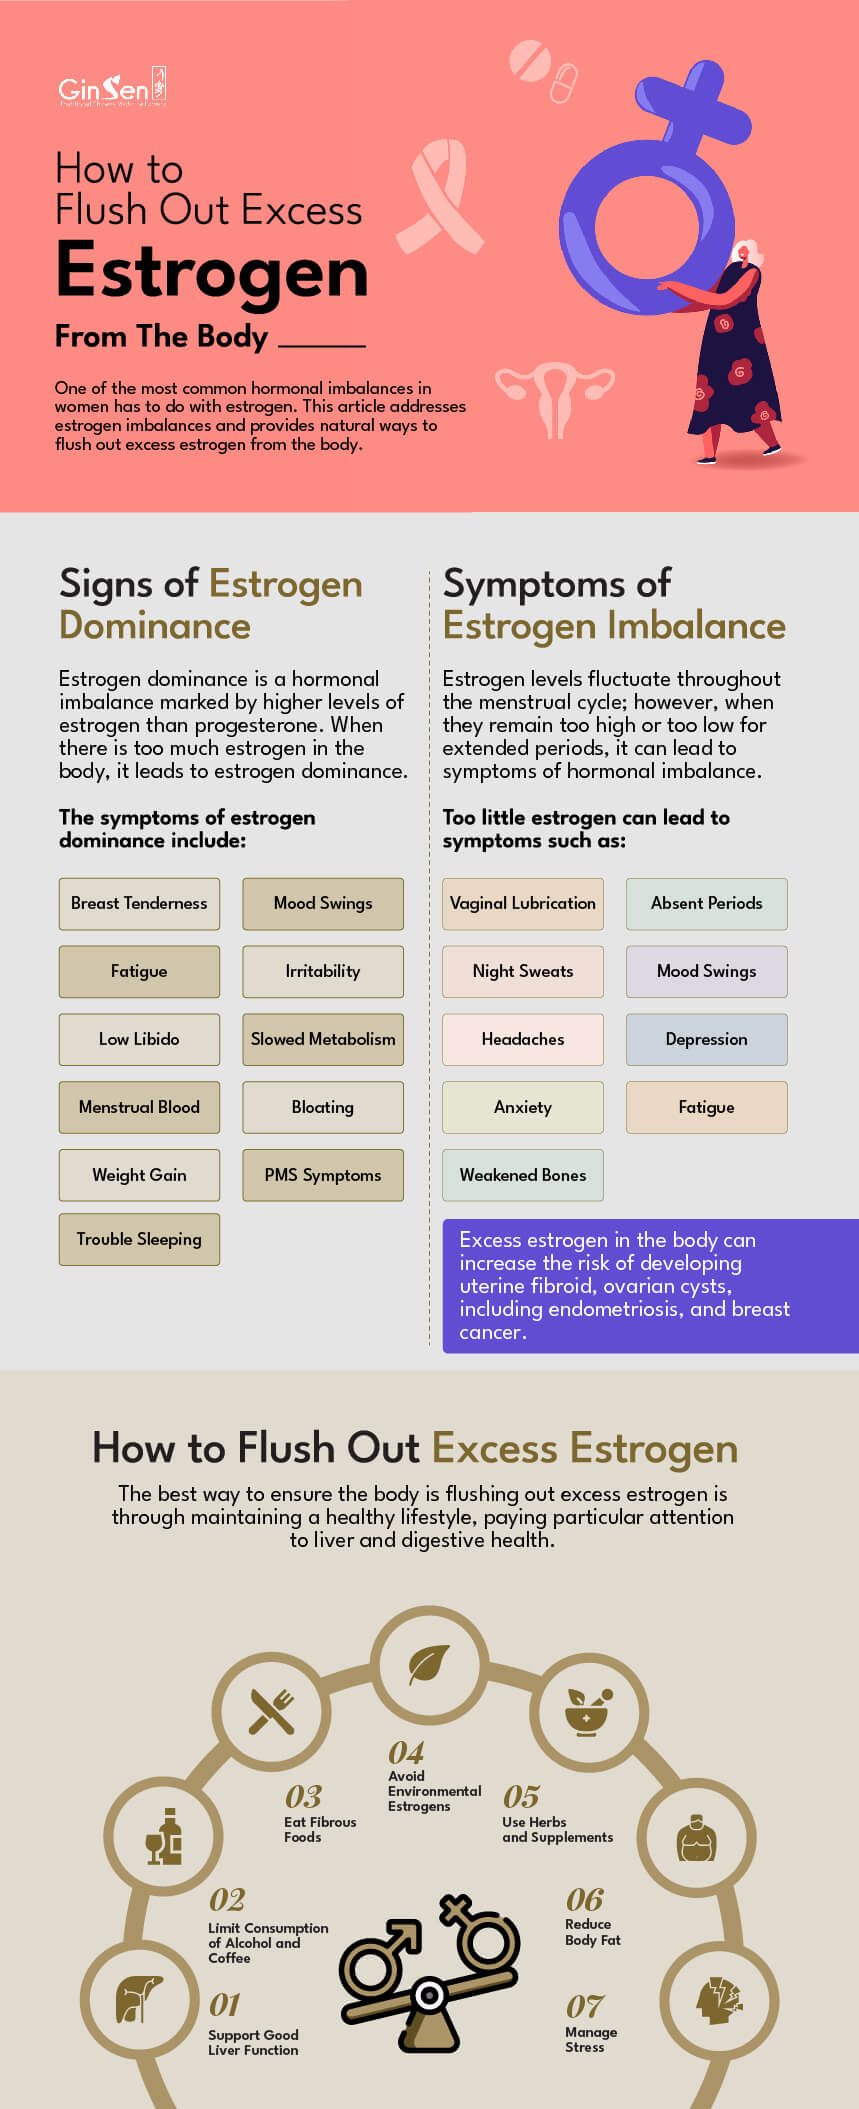 How to flush out excess estrogen